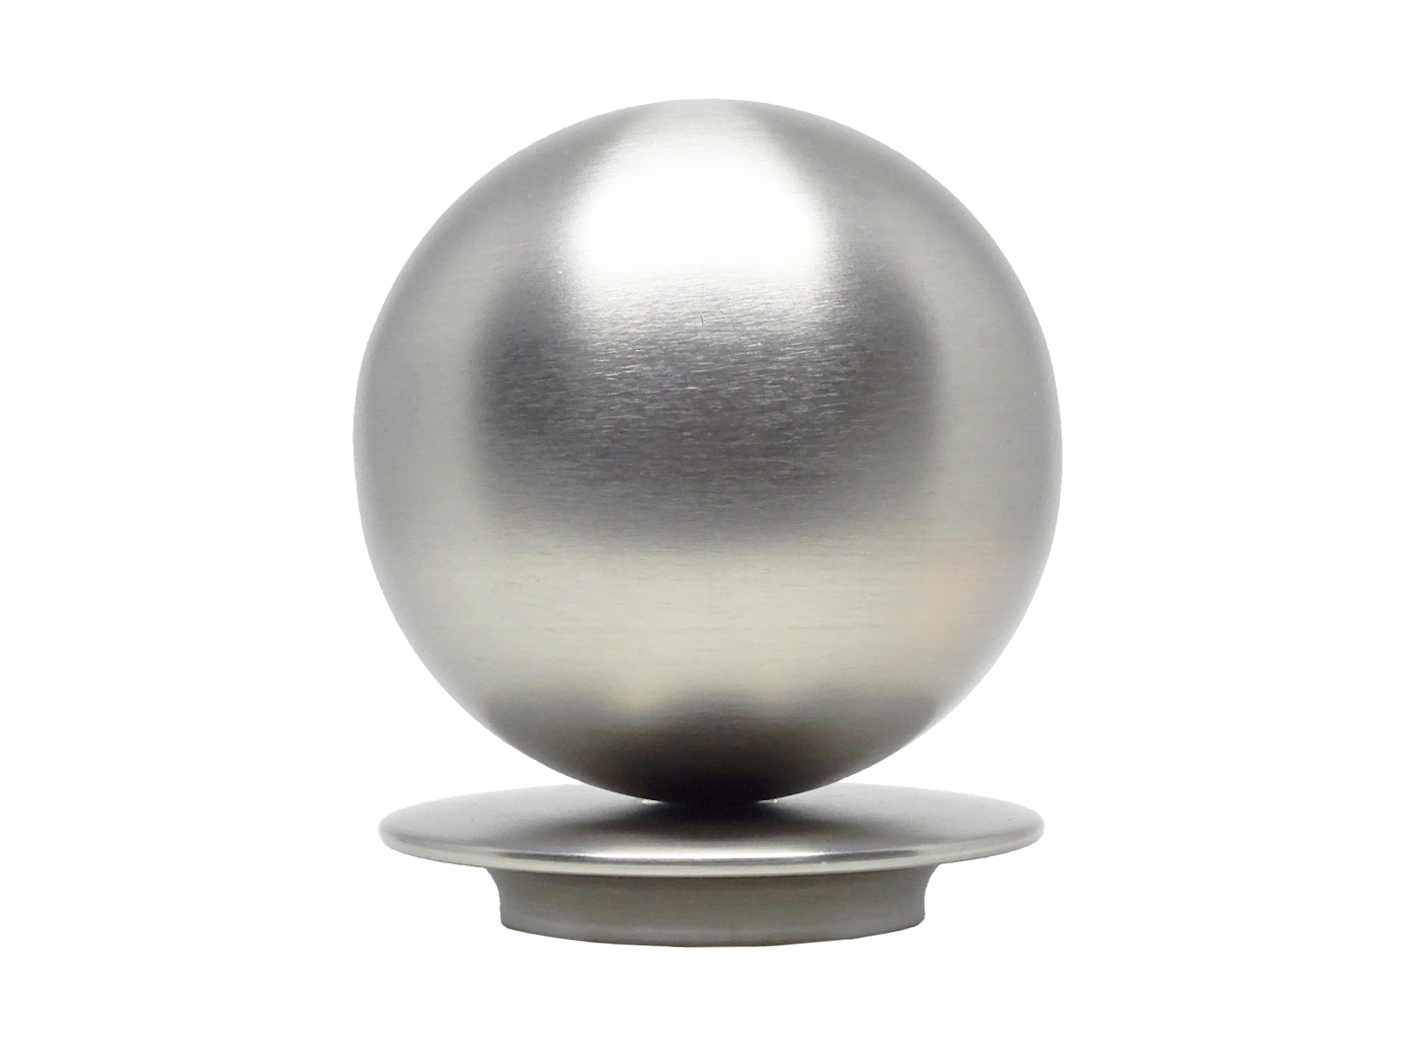 Metal ball png. Mm dia tracked